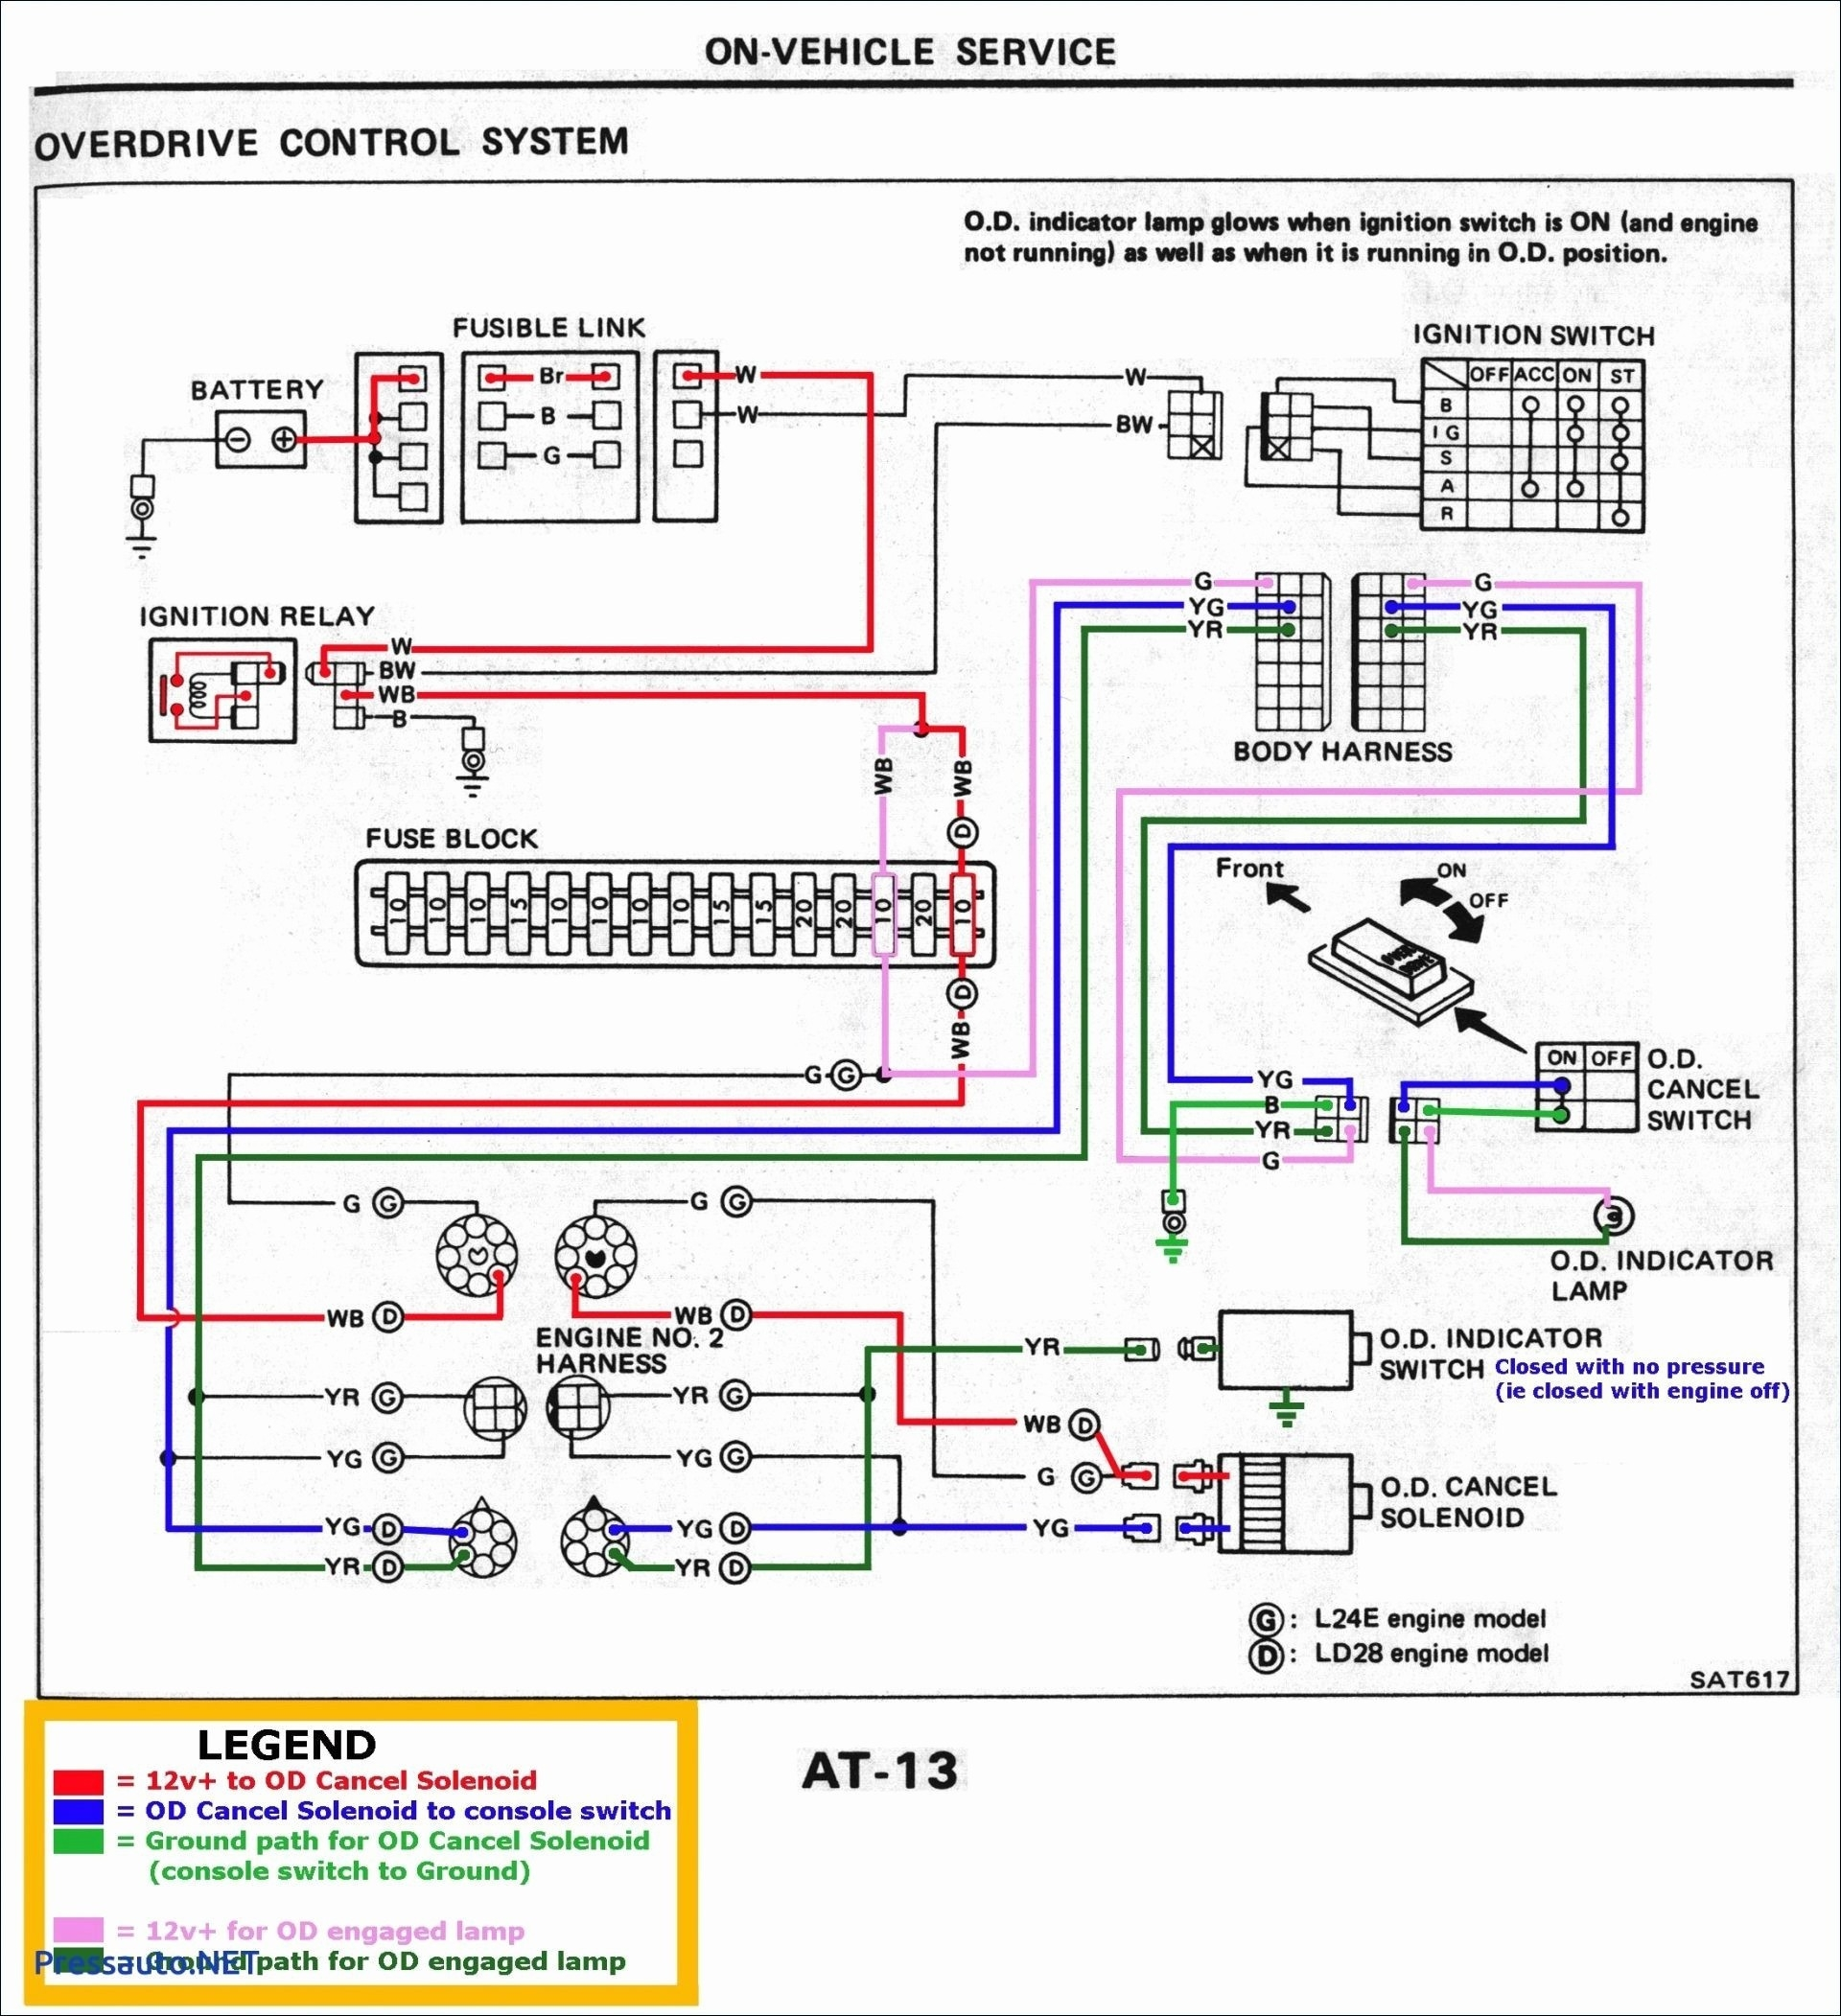 2004 dodge ram 2500 wiring diagram Collection-2006 Dodge Ram 1500 Trailer Wiring Diagram Valid 2004 Dodge Ram 1500 Ignition Switch Wiring Diagram 18-q